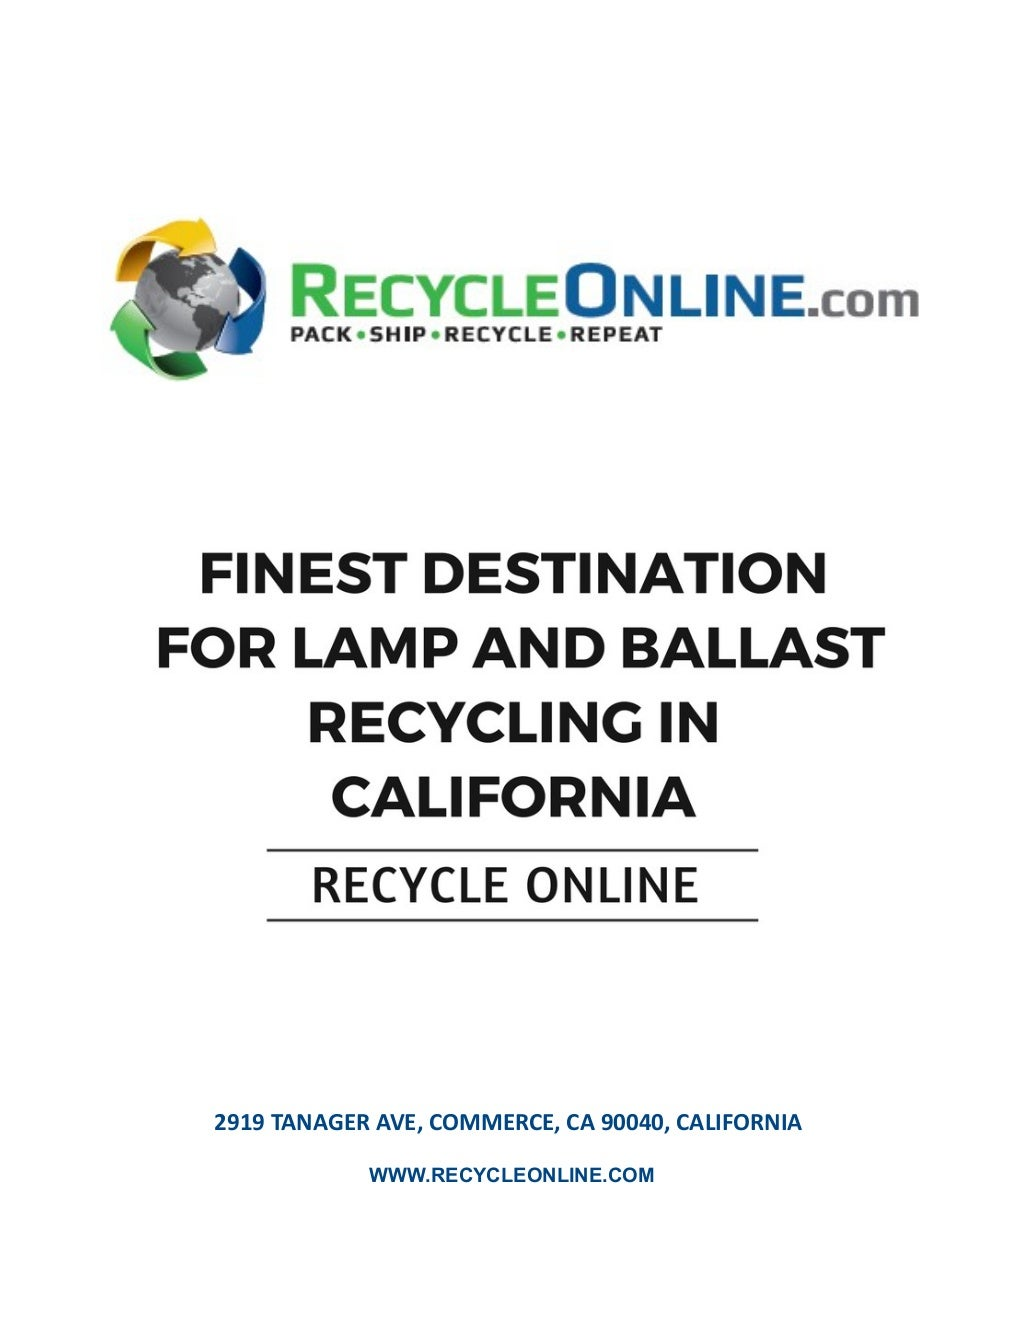 Finest Destination for Lamp and Ballast Recycling in California - Recycle Online